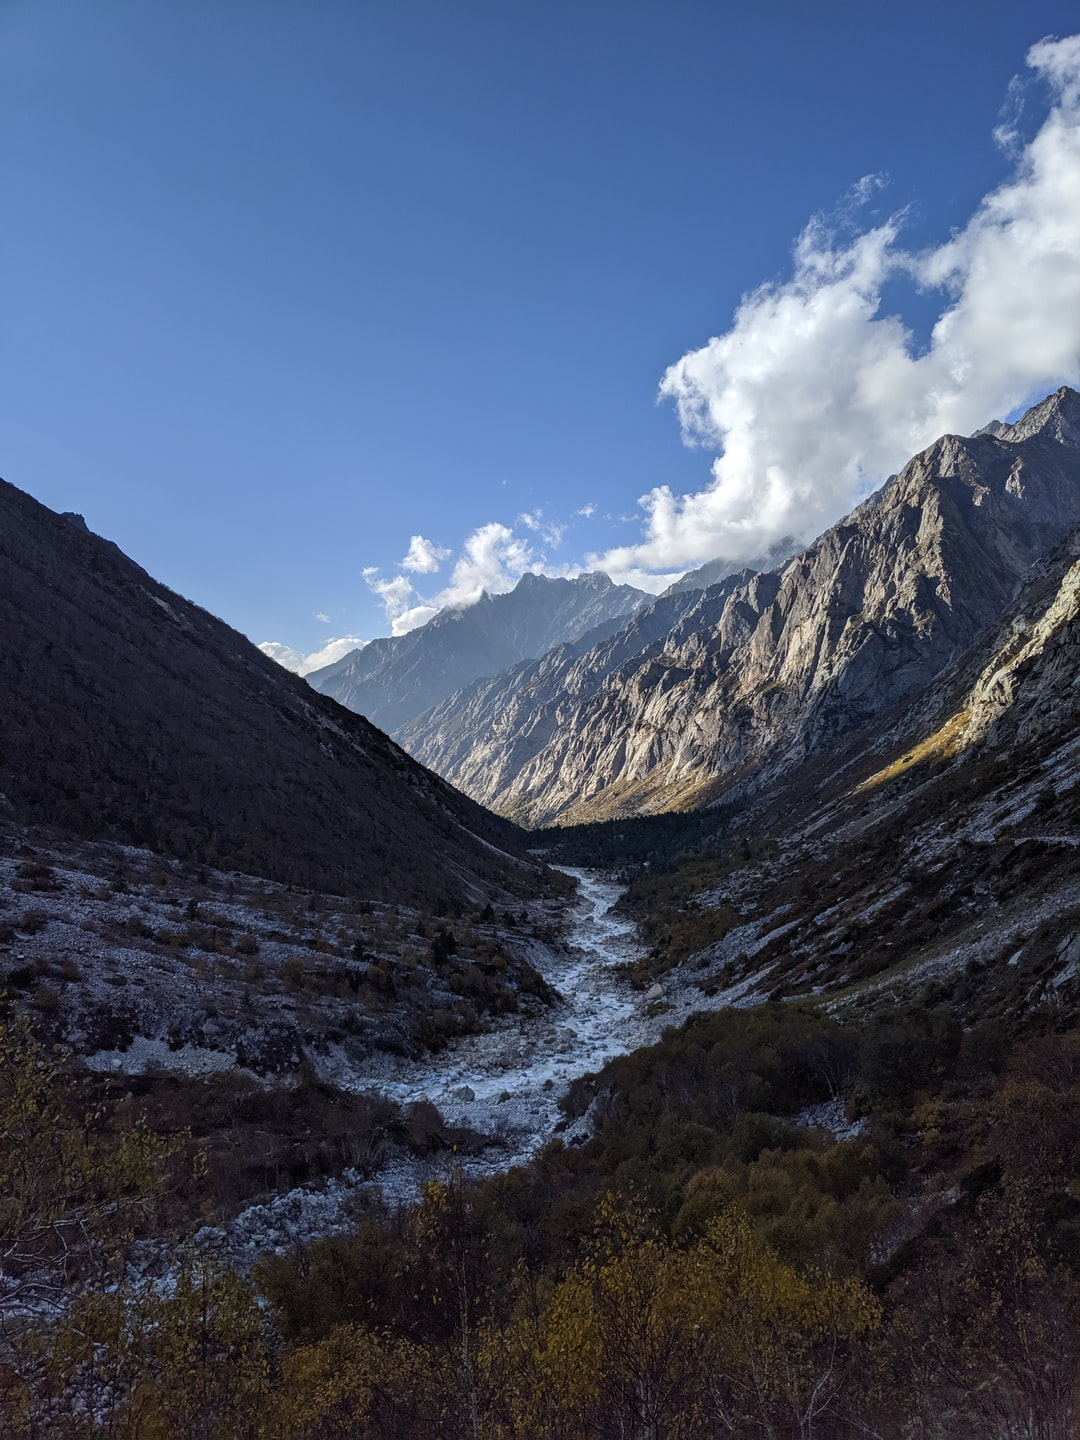 The Bhagirathi River, the source stream of the Ganges.